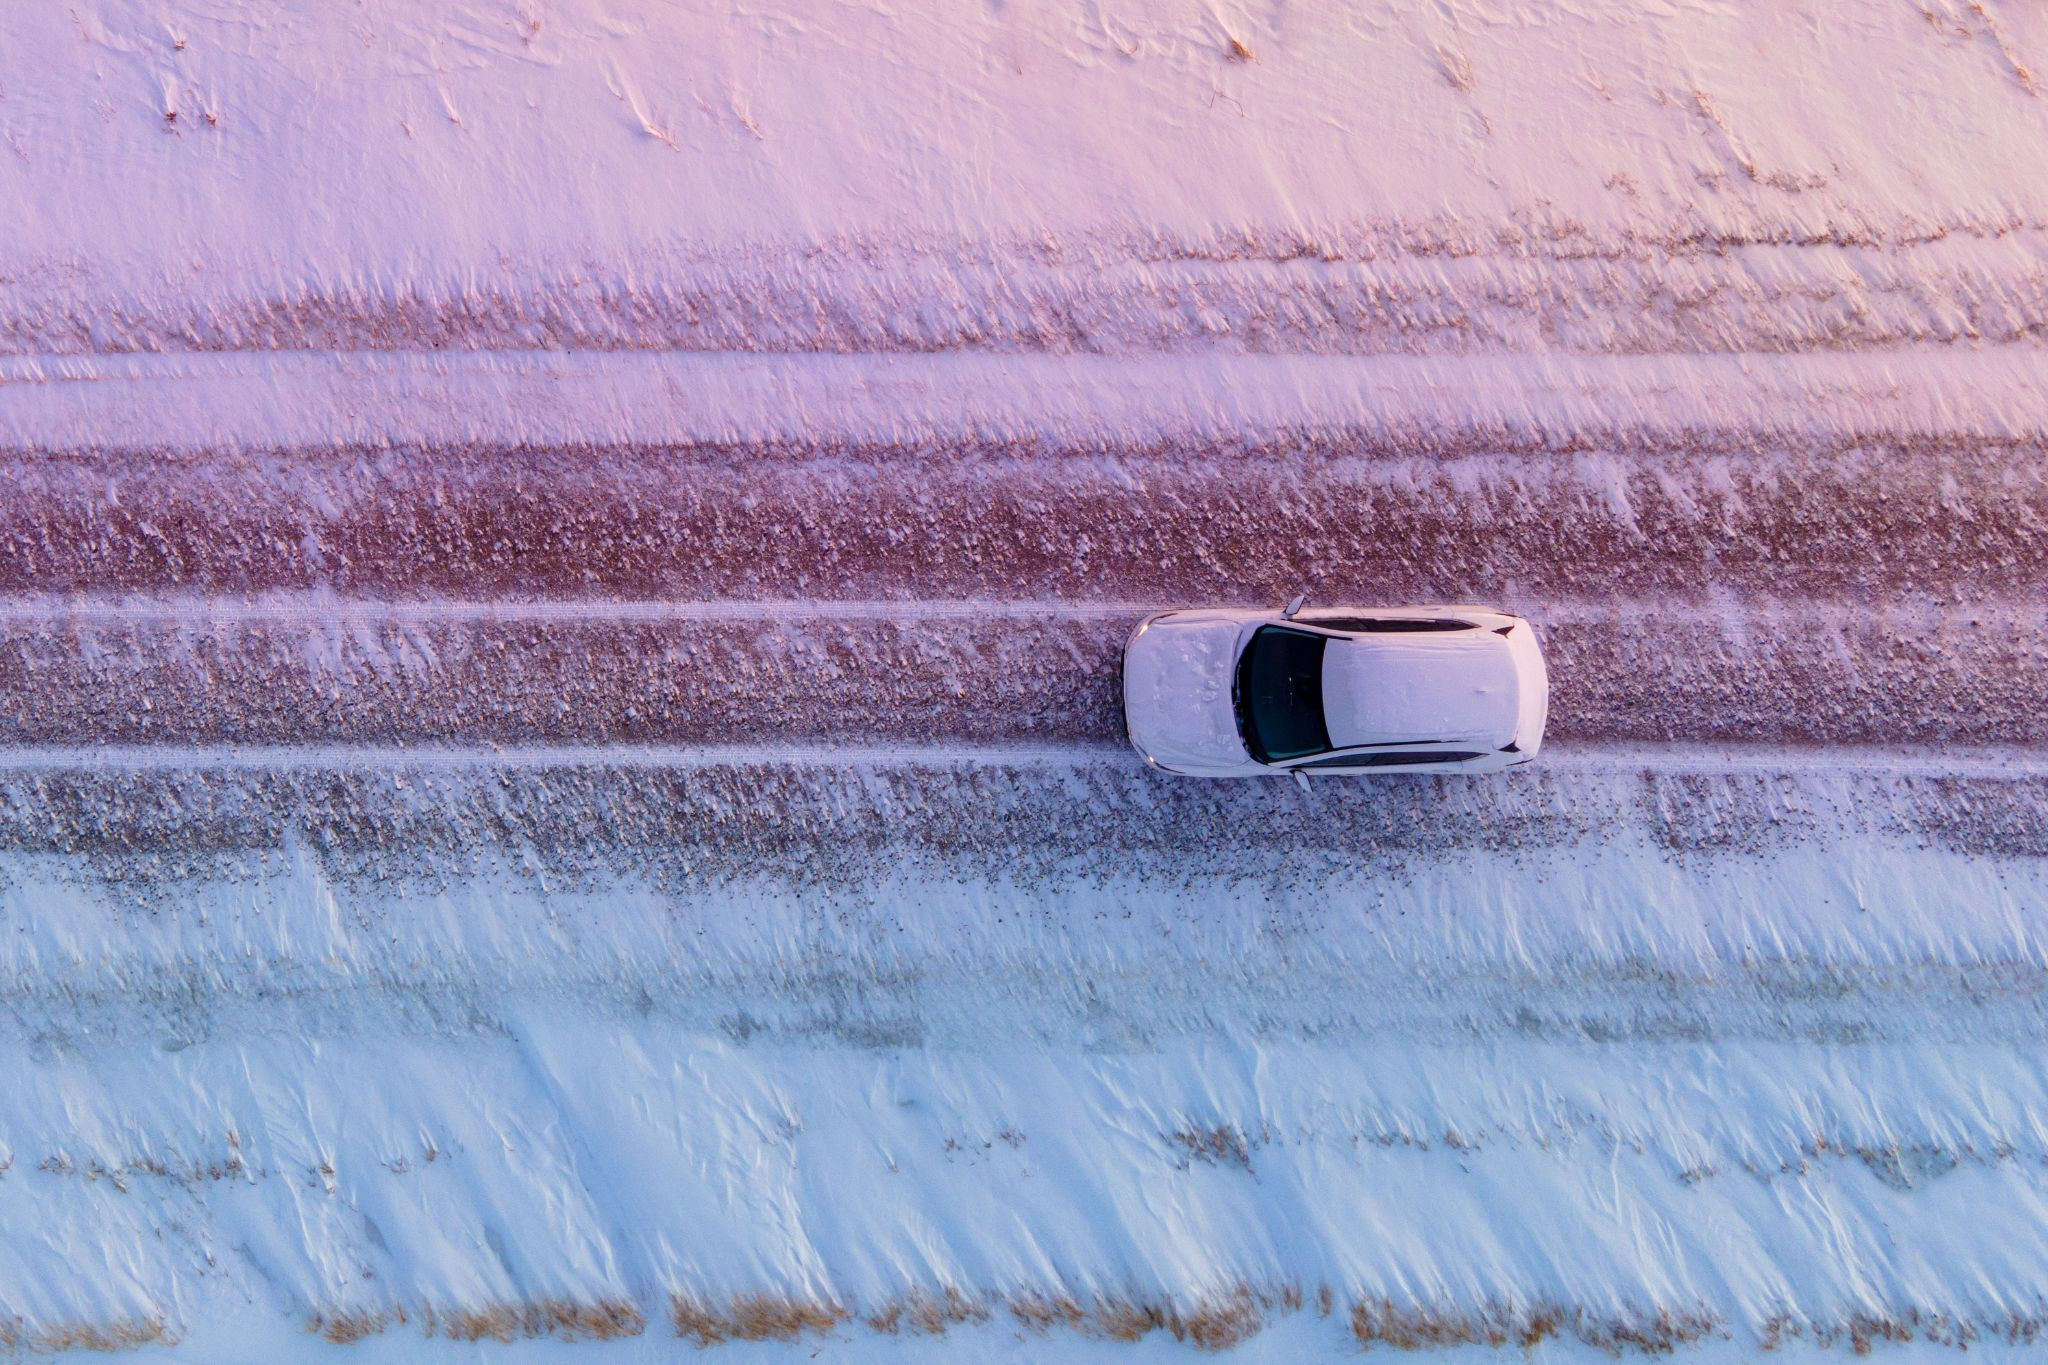 Top 3 Ways To Prepare Your Vehicle For Winter